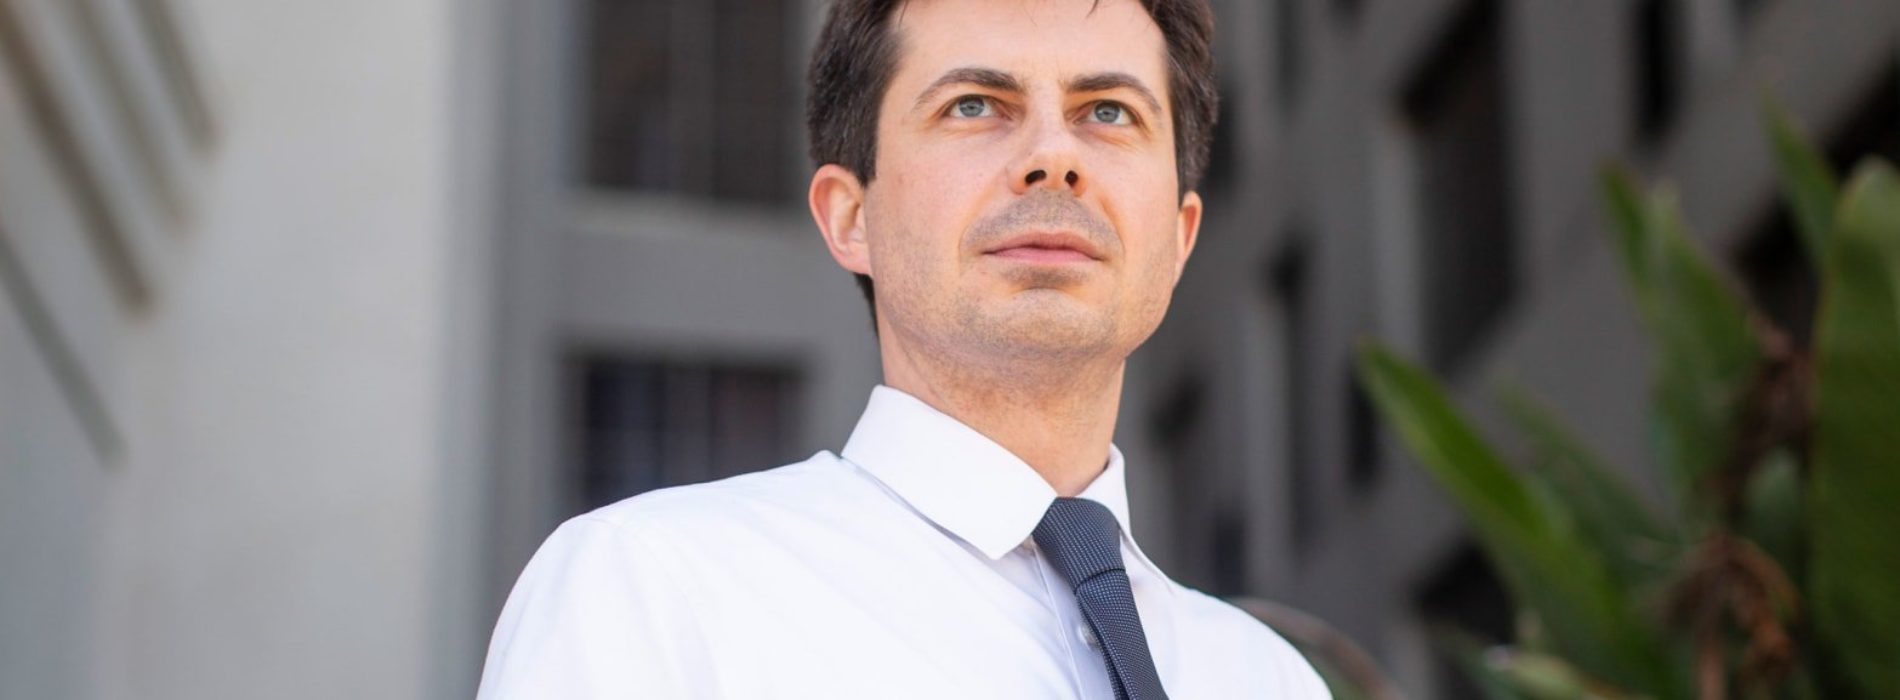 Mayor Pete raises $24.8 million from more than 294,000 donors in Q2